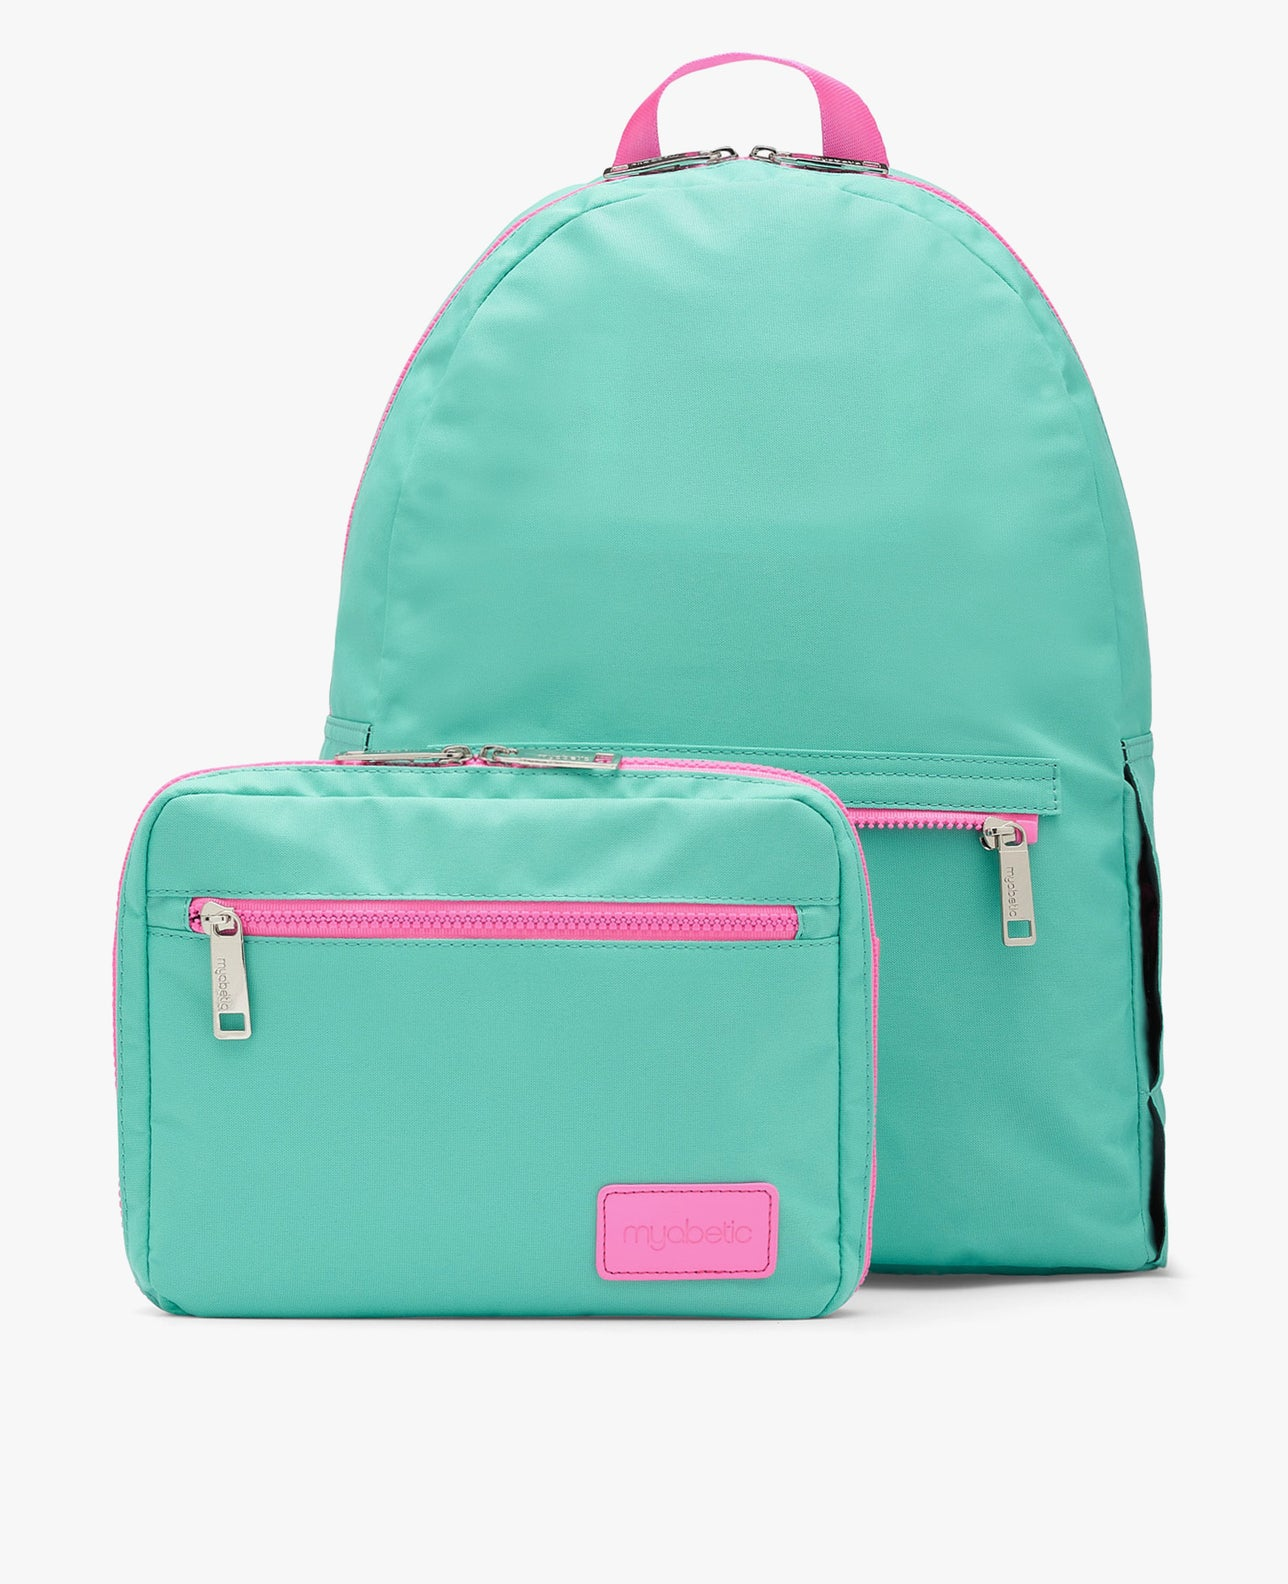 color:riviera blue/pink